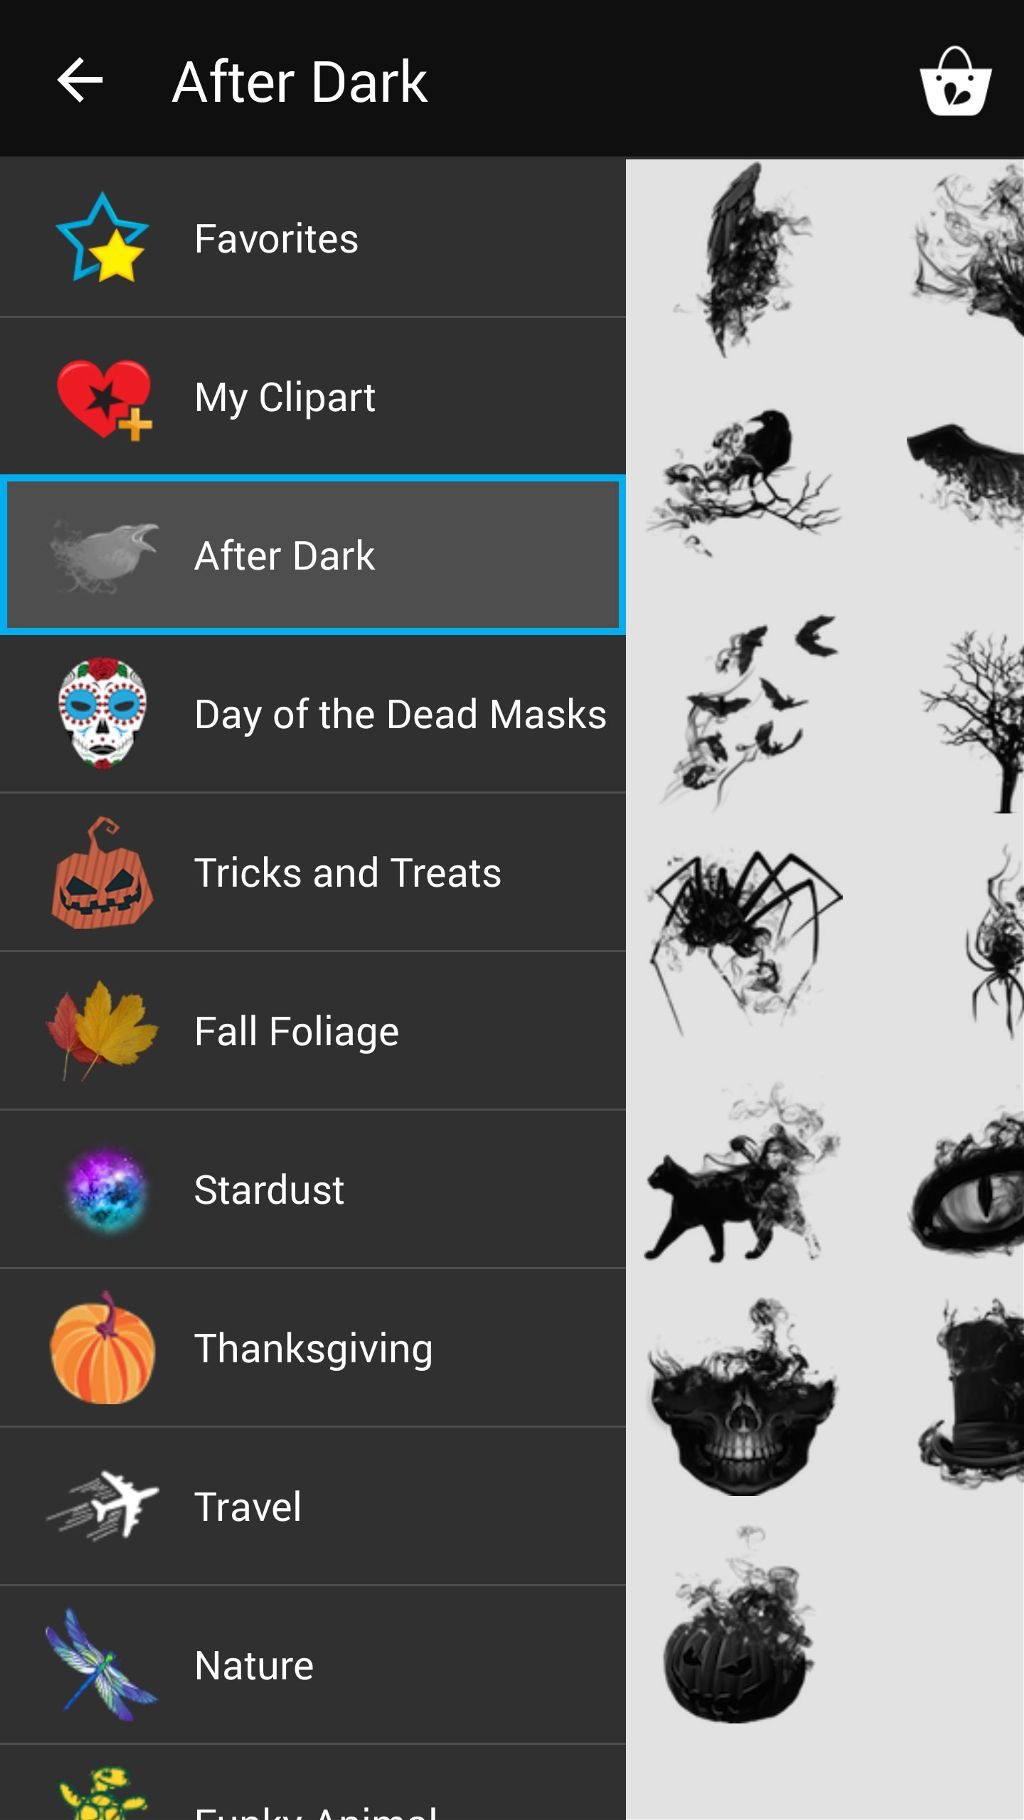 PicsArt After Dark clipart package